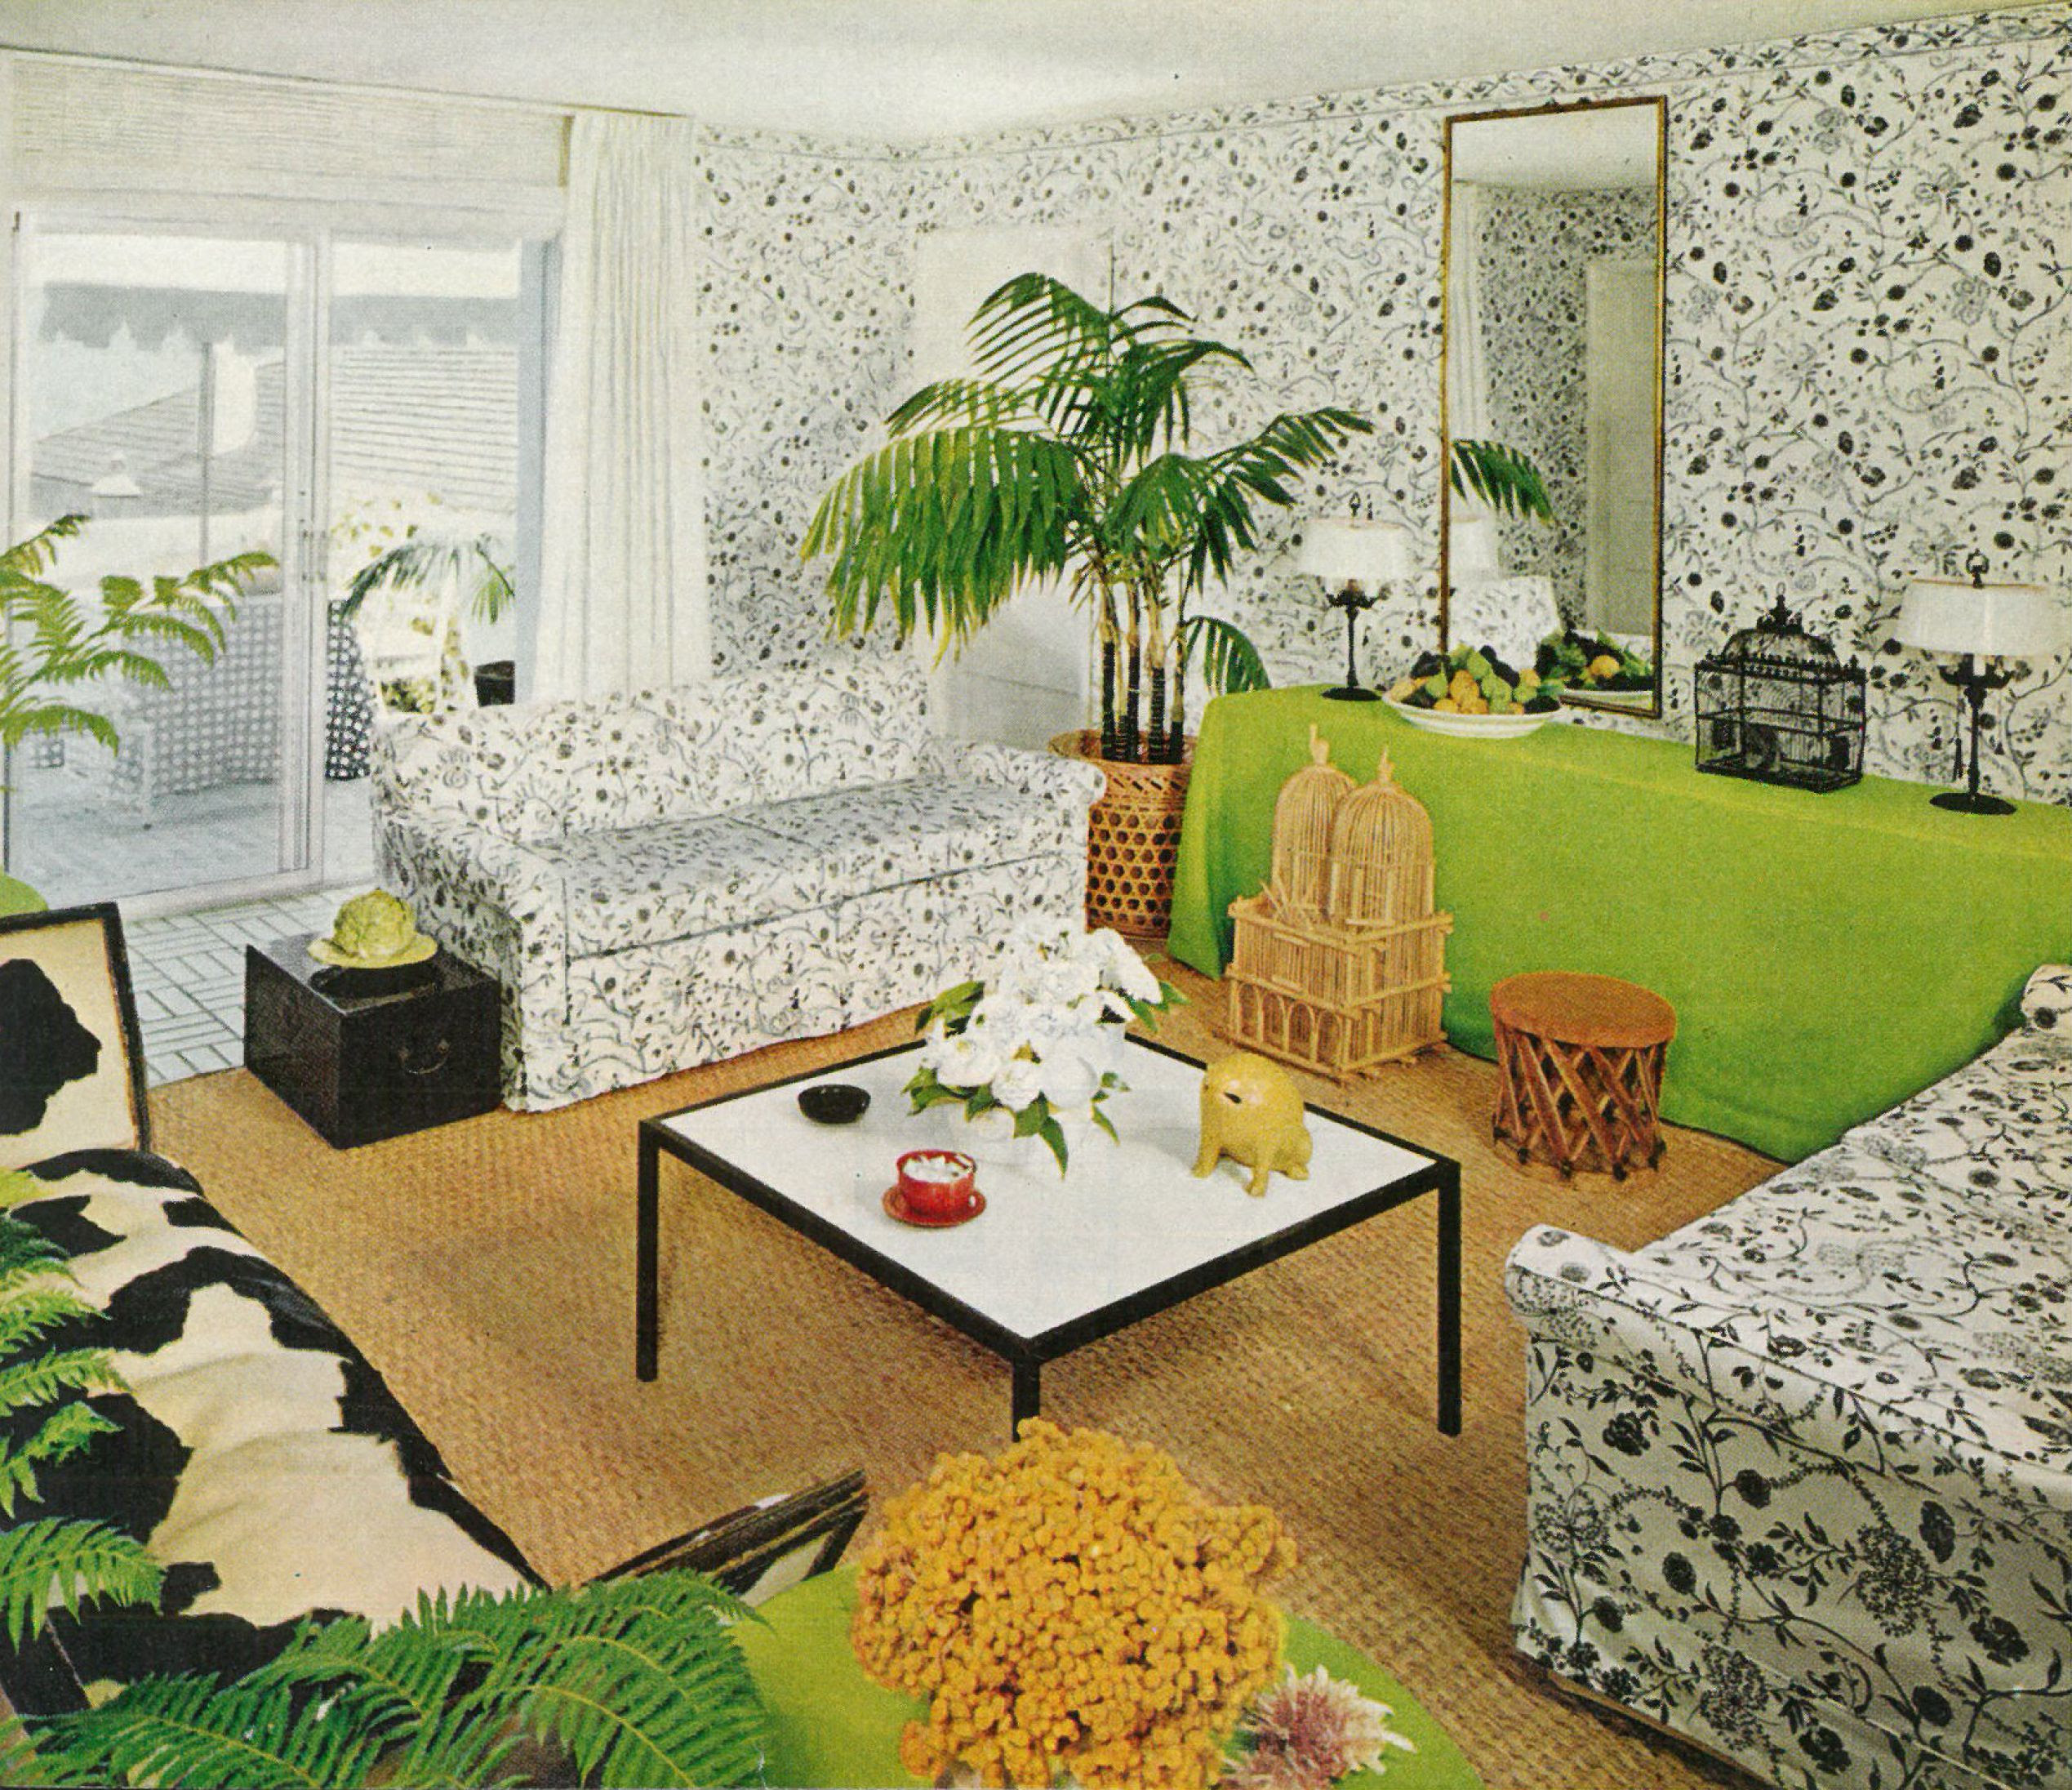 50 Years Ago Home Design Got Its Groove On The Boston Globe